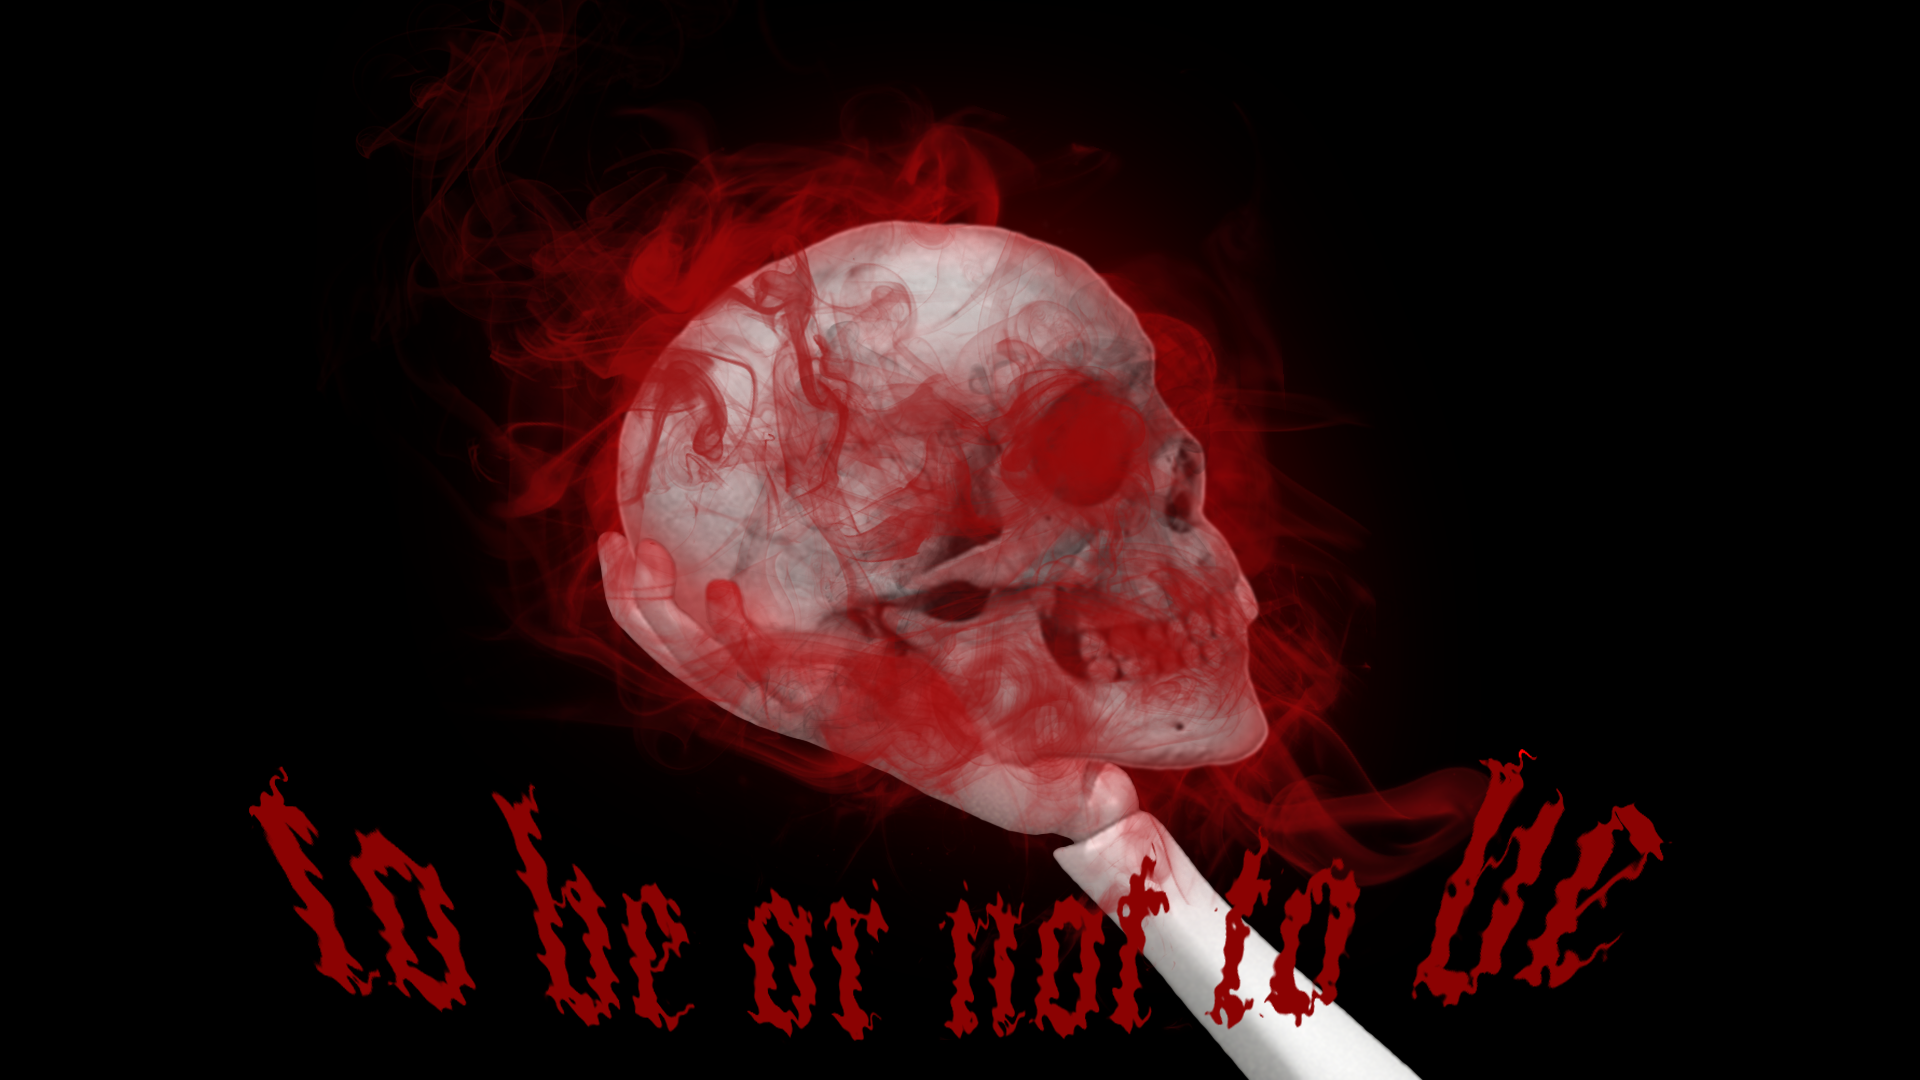 To Be Or Not To Be Hd Wallpaper Background Image 1920x1080